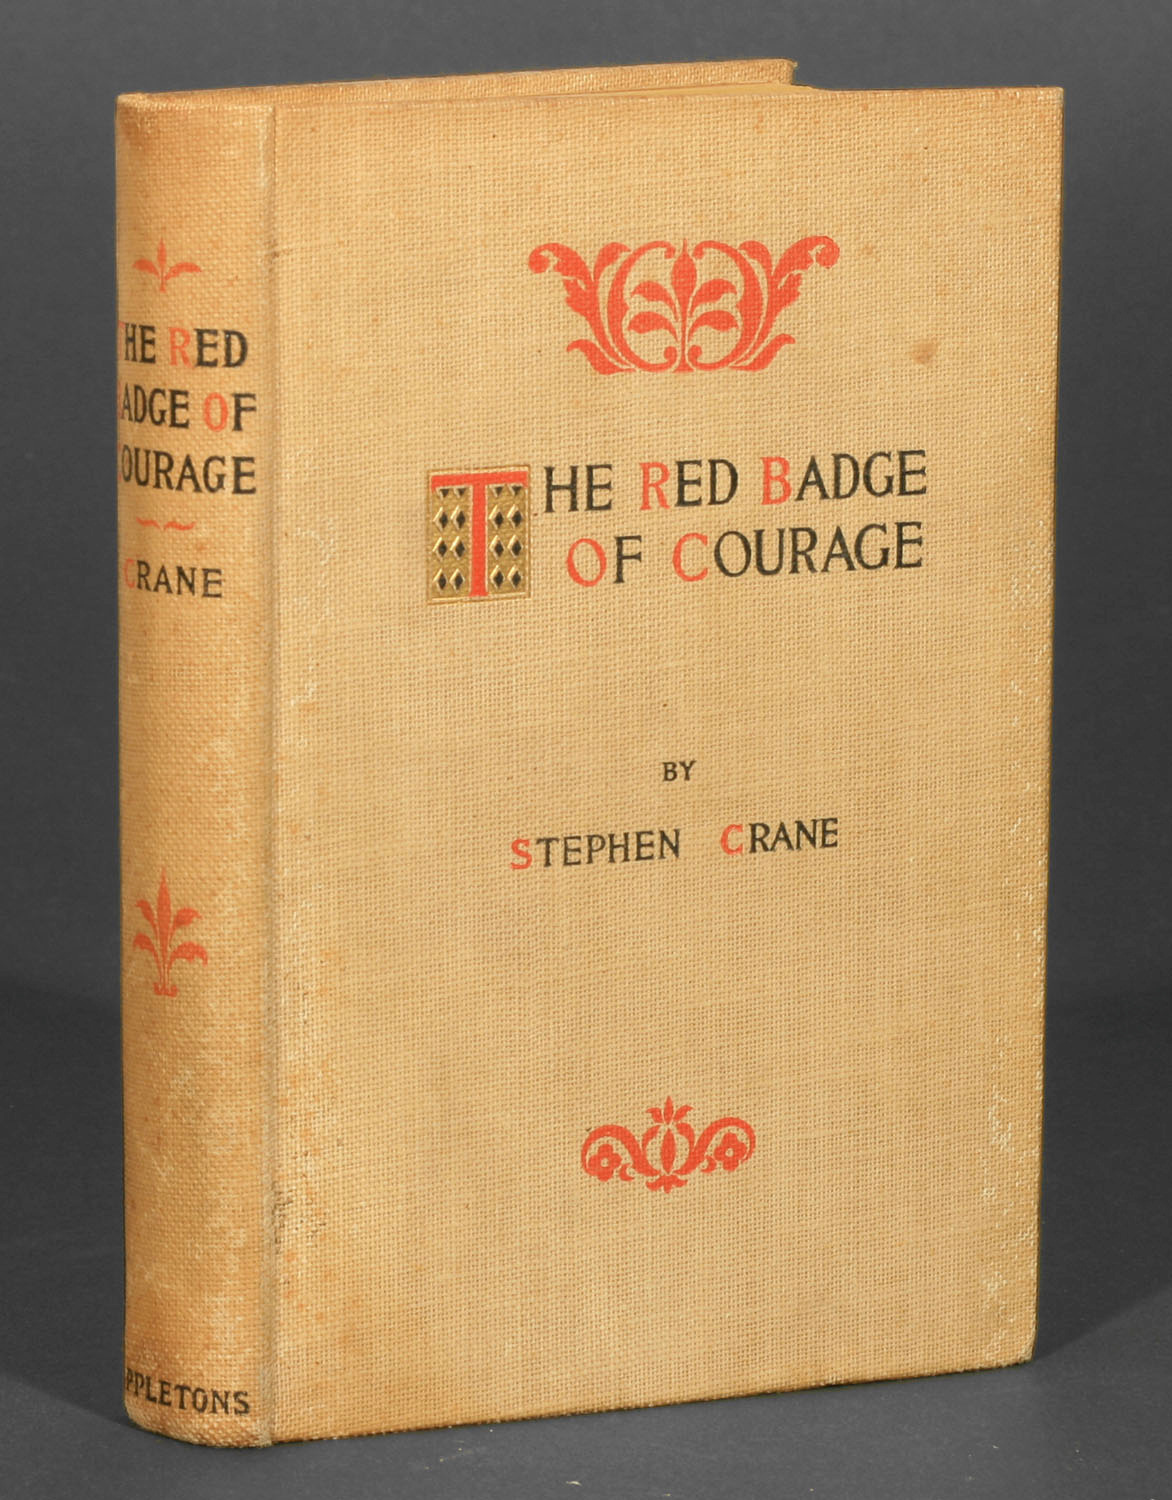 Stephen Crane's Red Badge of Courage